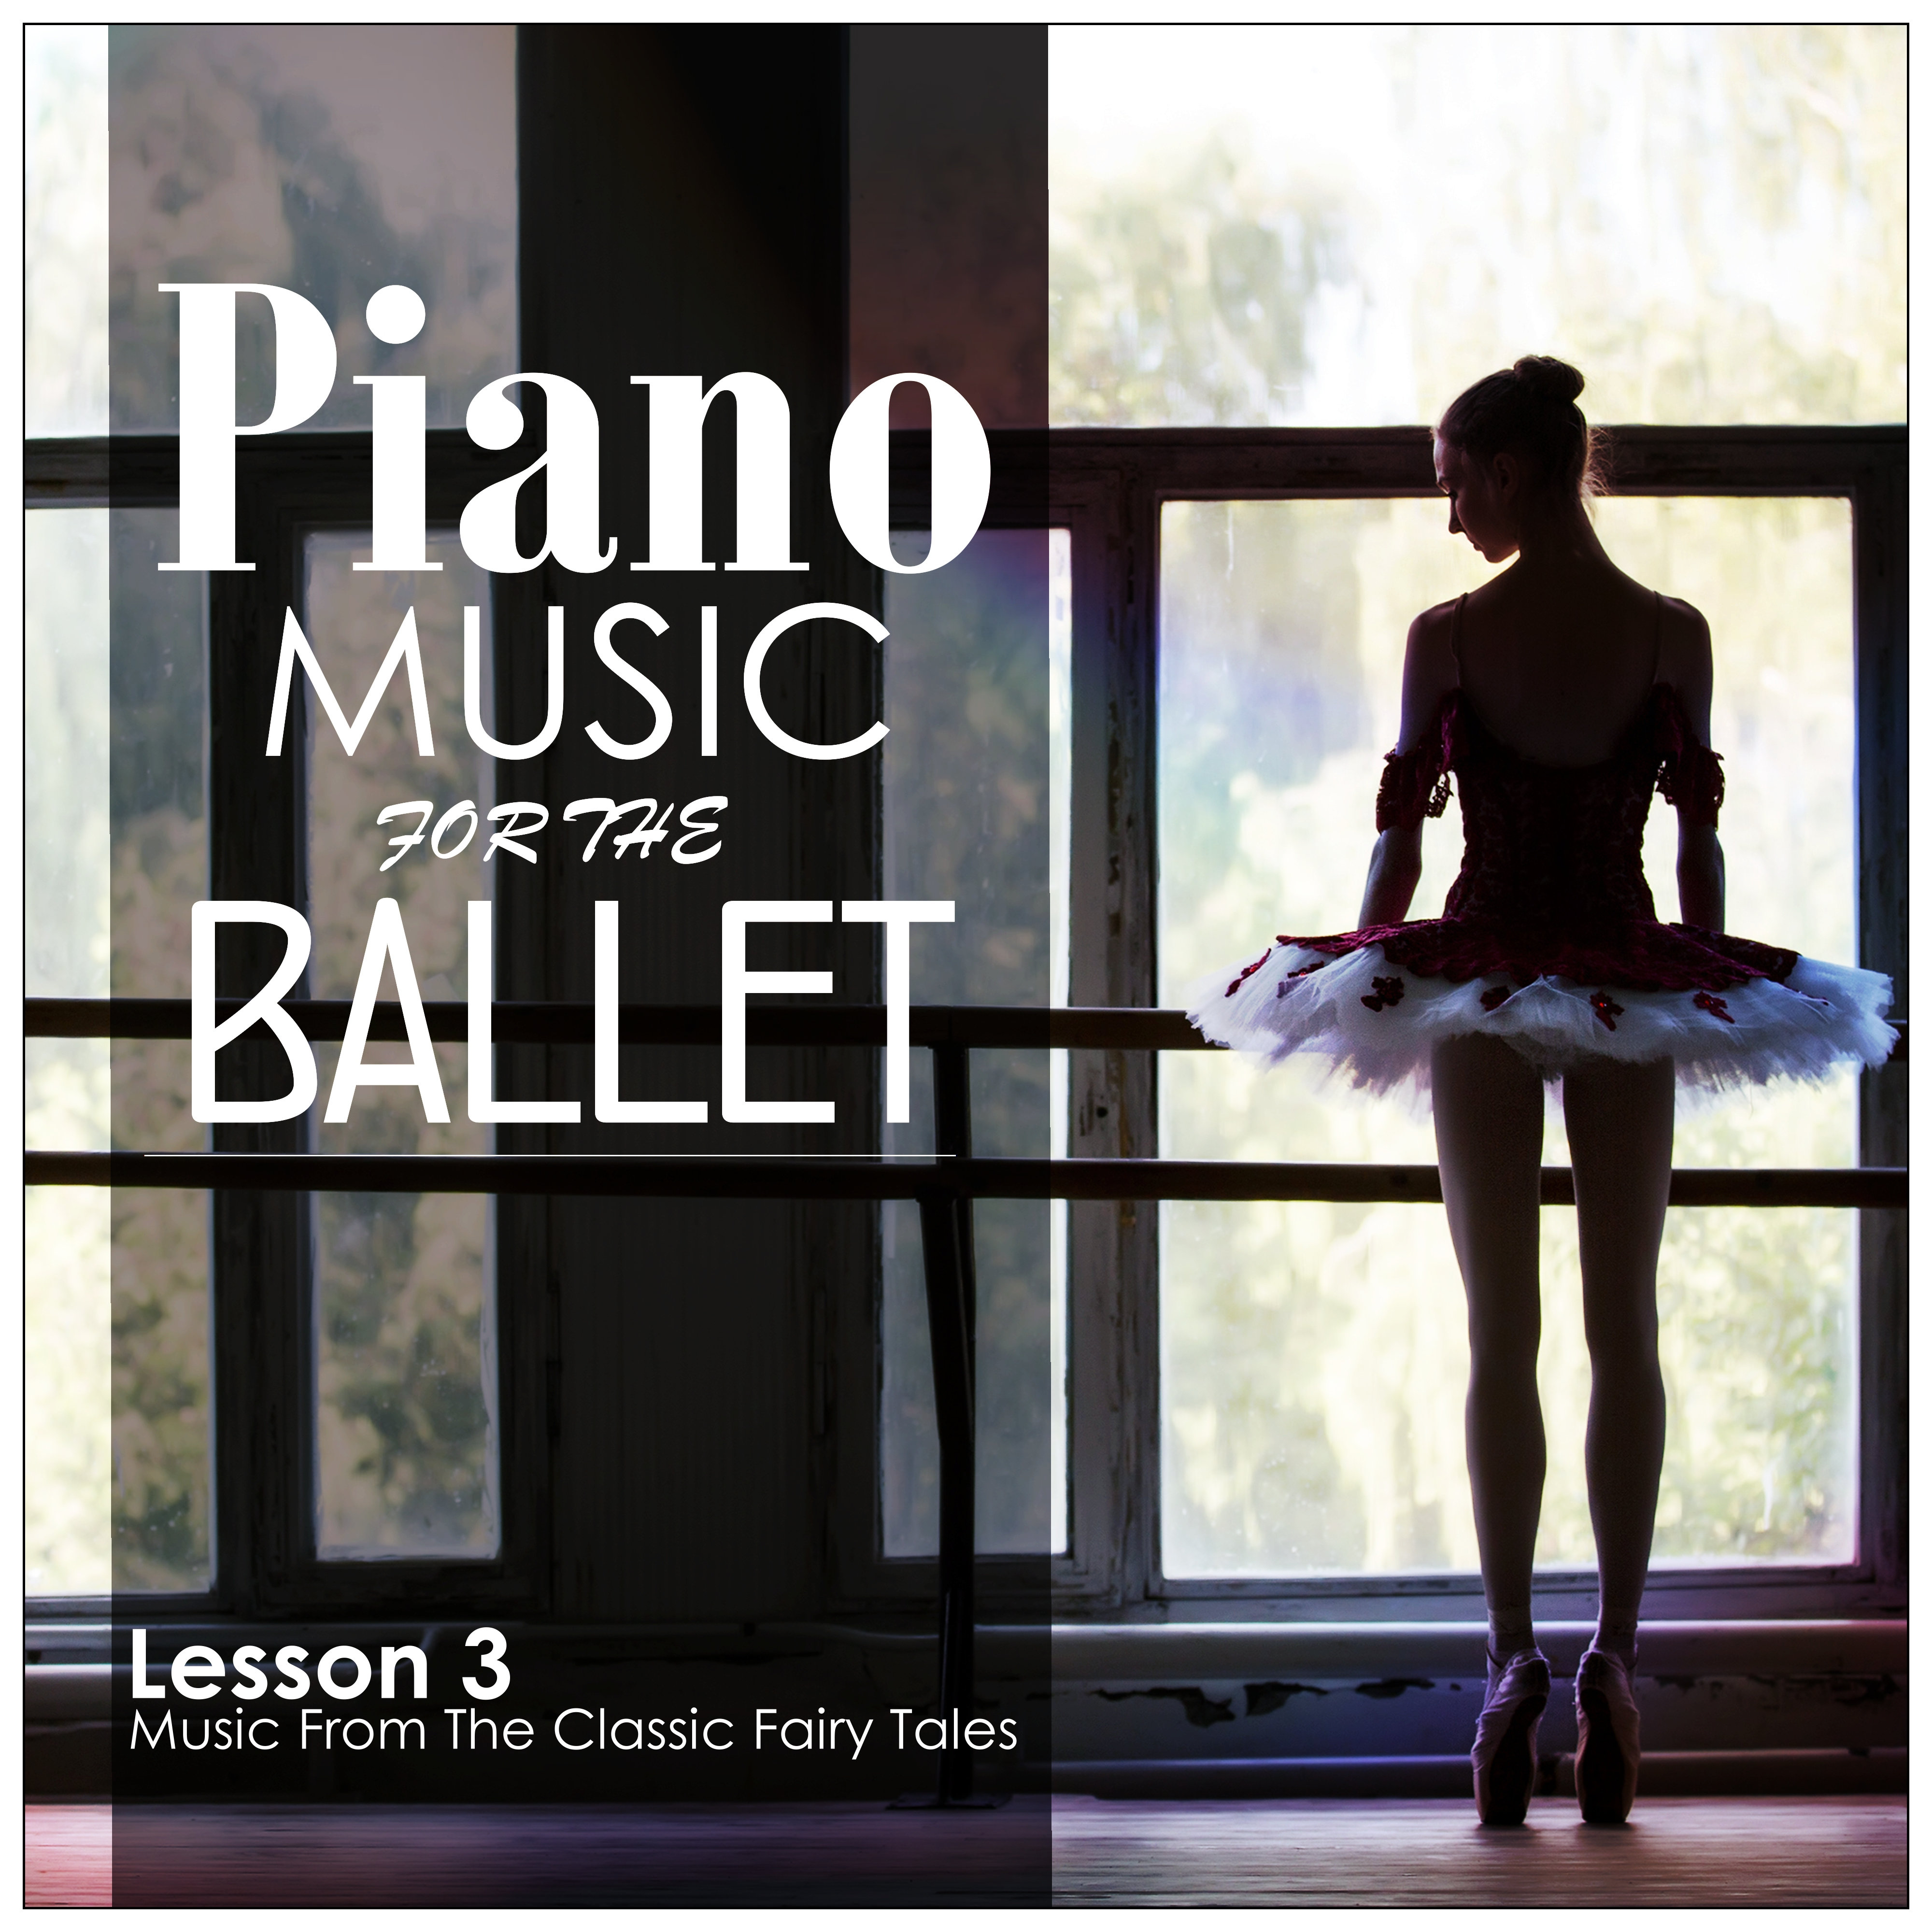 piano music for the ballet lesson 3 music from the classic fairy tales. Black Bedroom Furniture Sets. Home Design Ideas